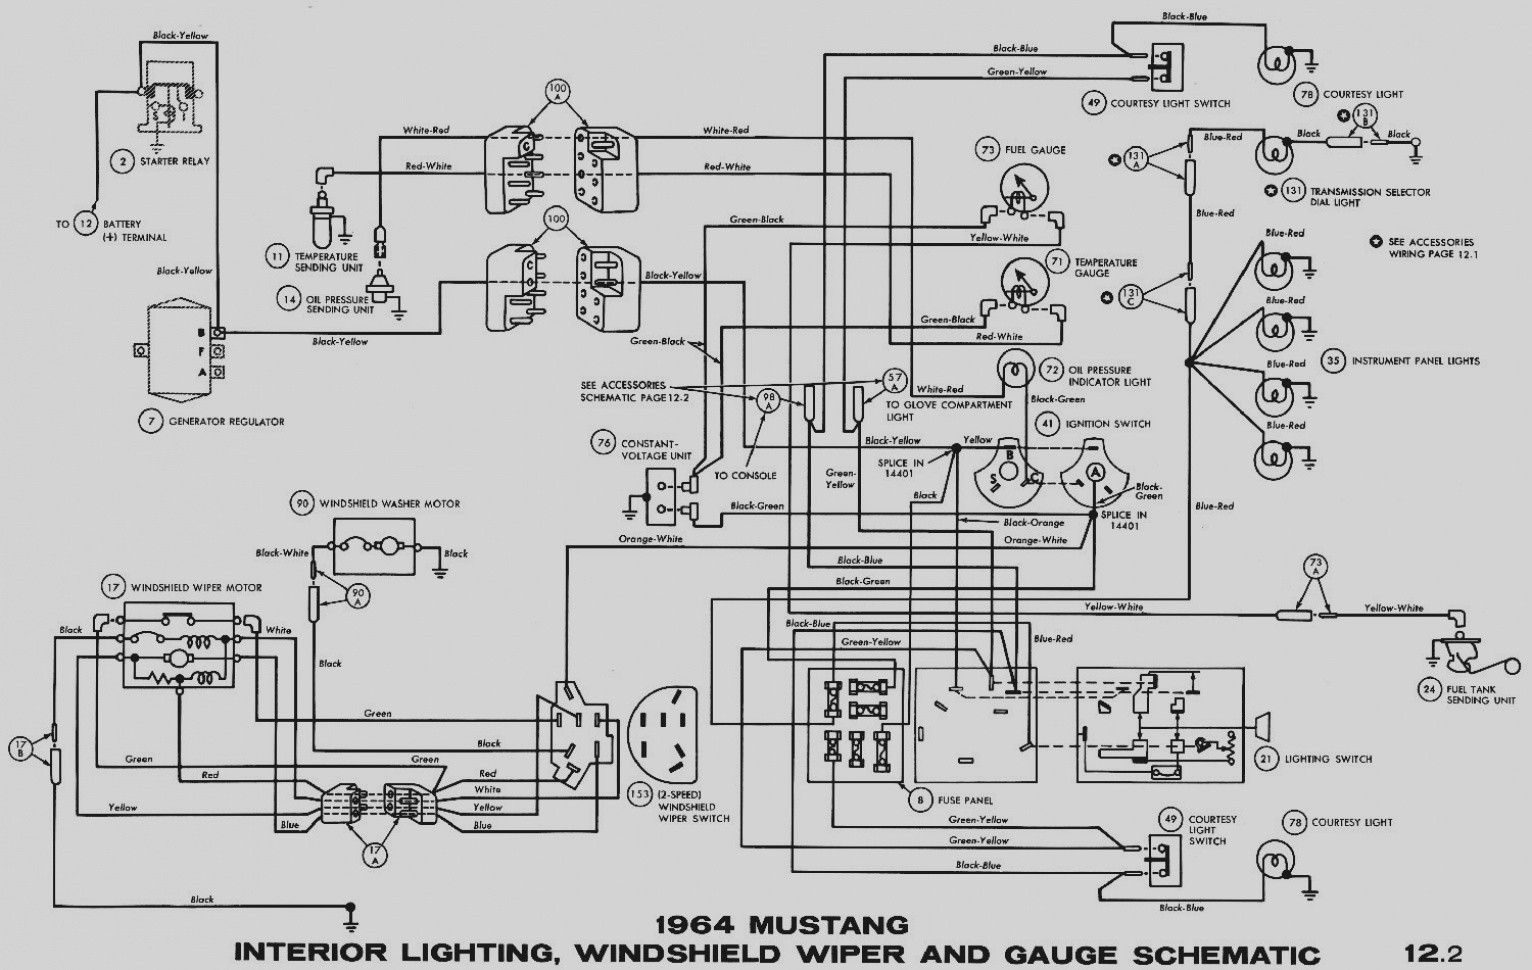 69 ford torino wiring diagram  u2022 wiring diagram for free 1993 Buick Regal Fuse Box 1993 Buick Regal Fuse Box